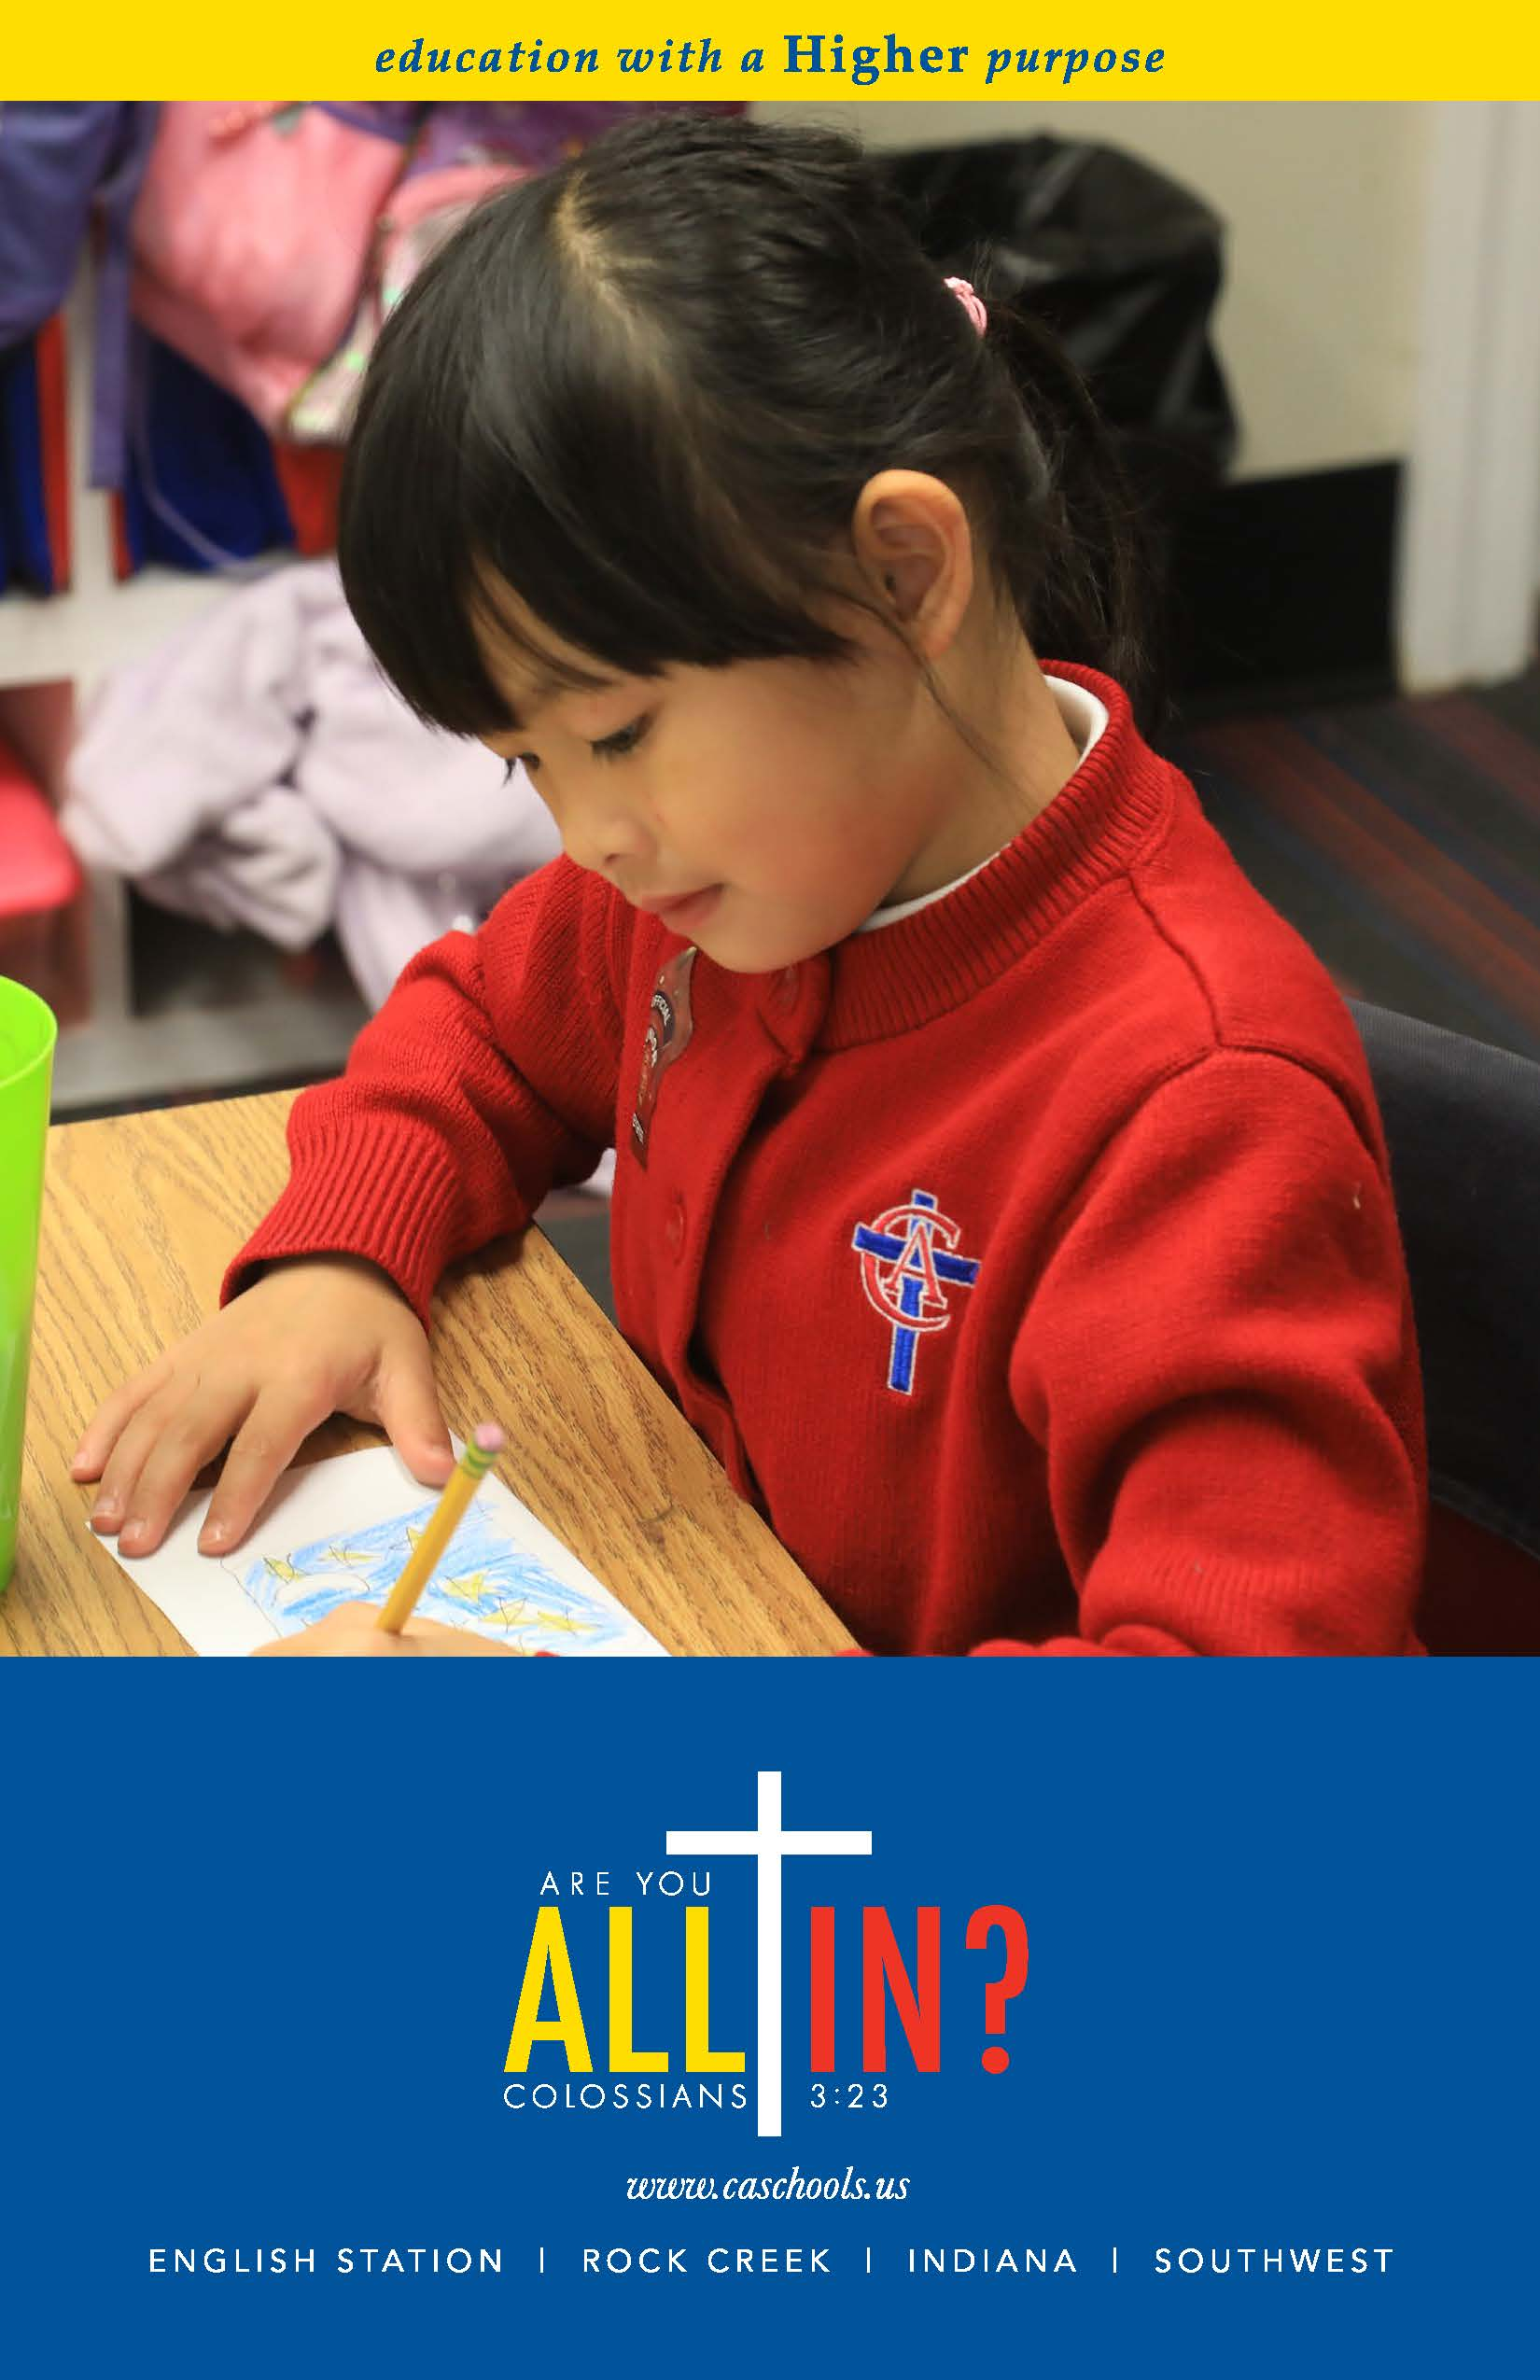 Christian Academy School System | Annual Fund | 2020-2021 ALL IN! Brochure